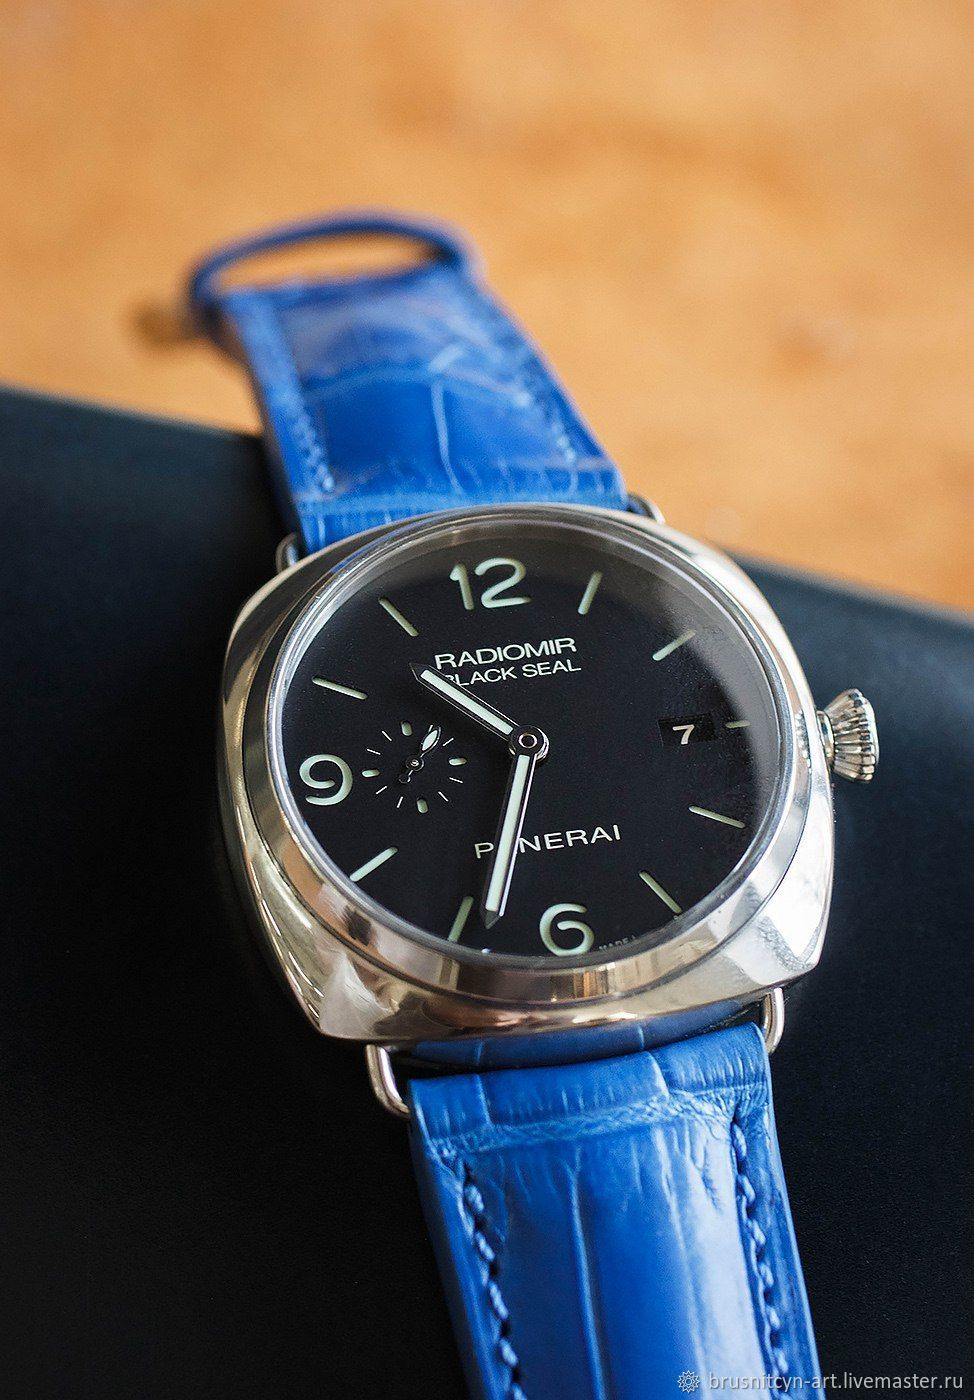 Crocodile leather watchband for Panerai, Watch Straps, St. Petersburg,  Фото №1